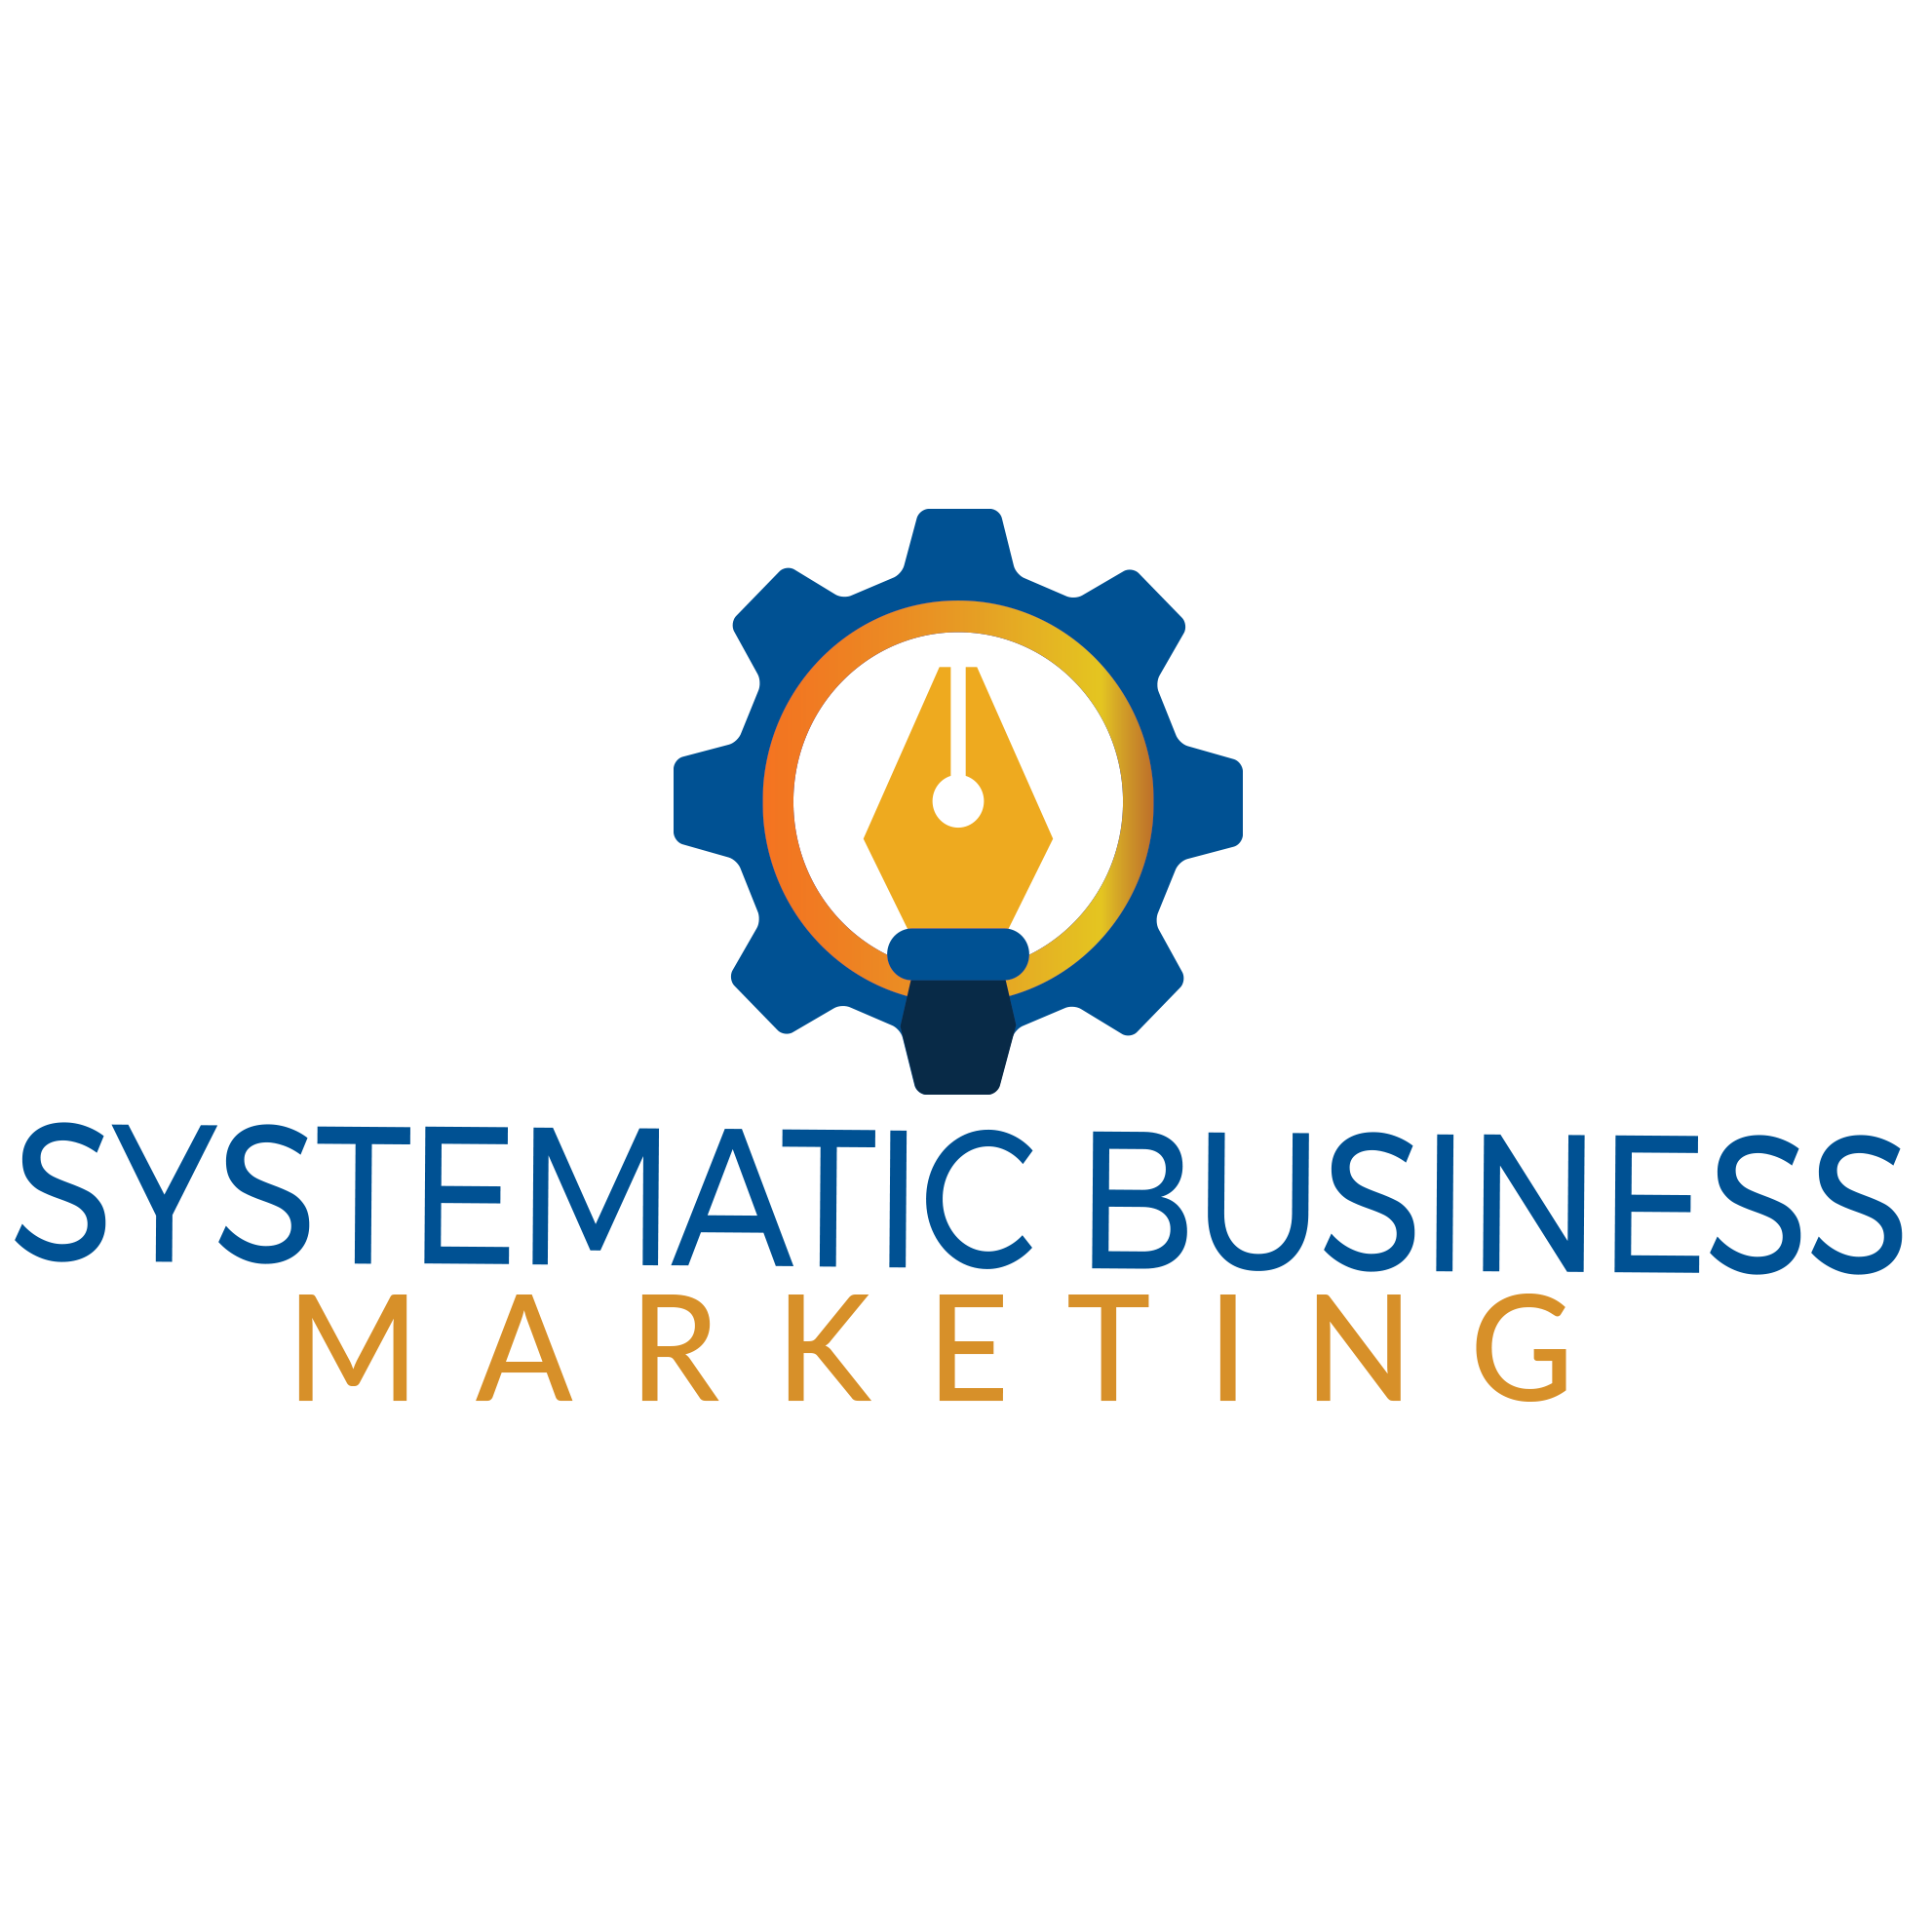 Systematic Business Marketing